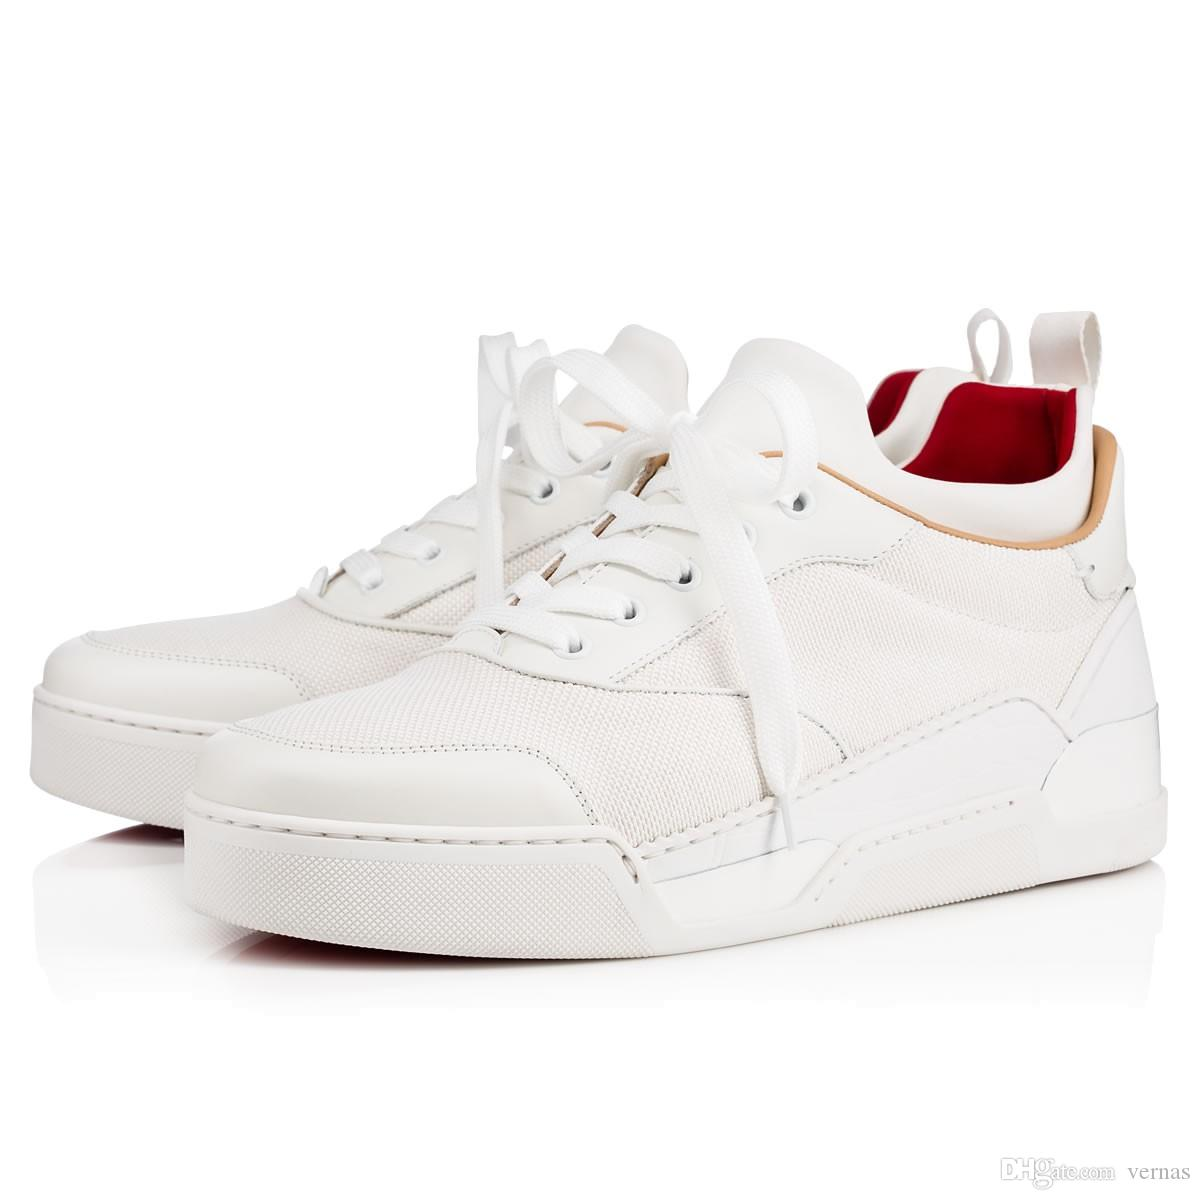 480c8b7470f3 Factory Price - Low Top With Luxurious Aurelien Flat Red Bottom ...